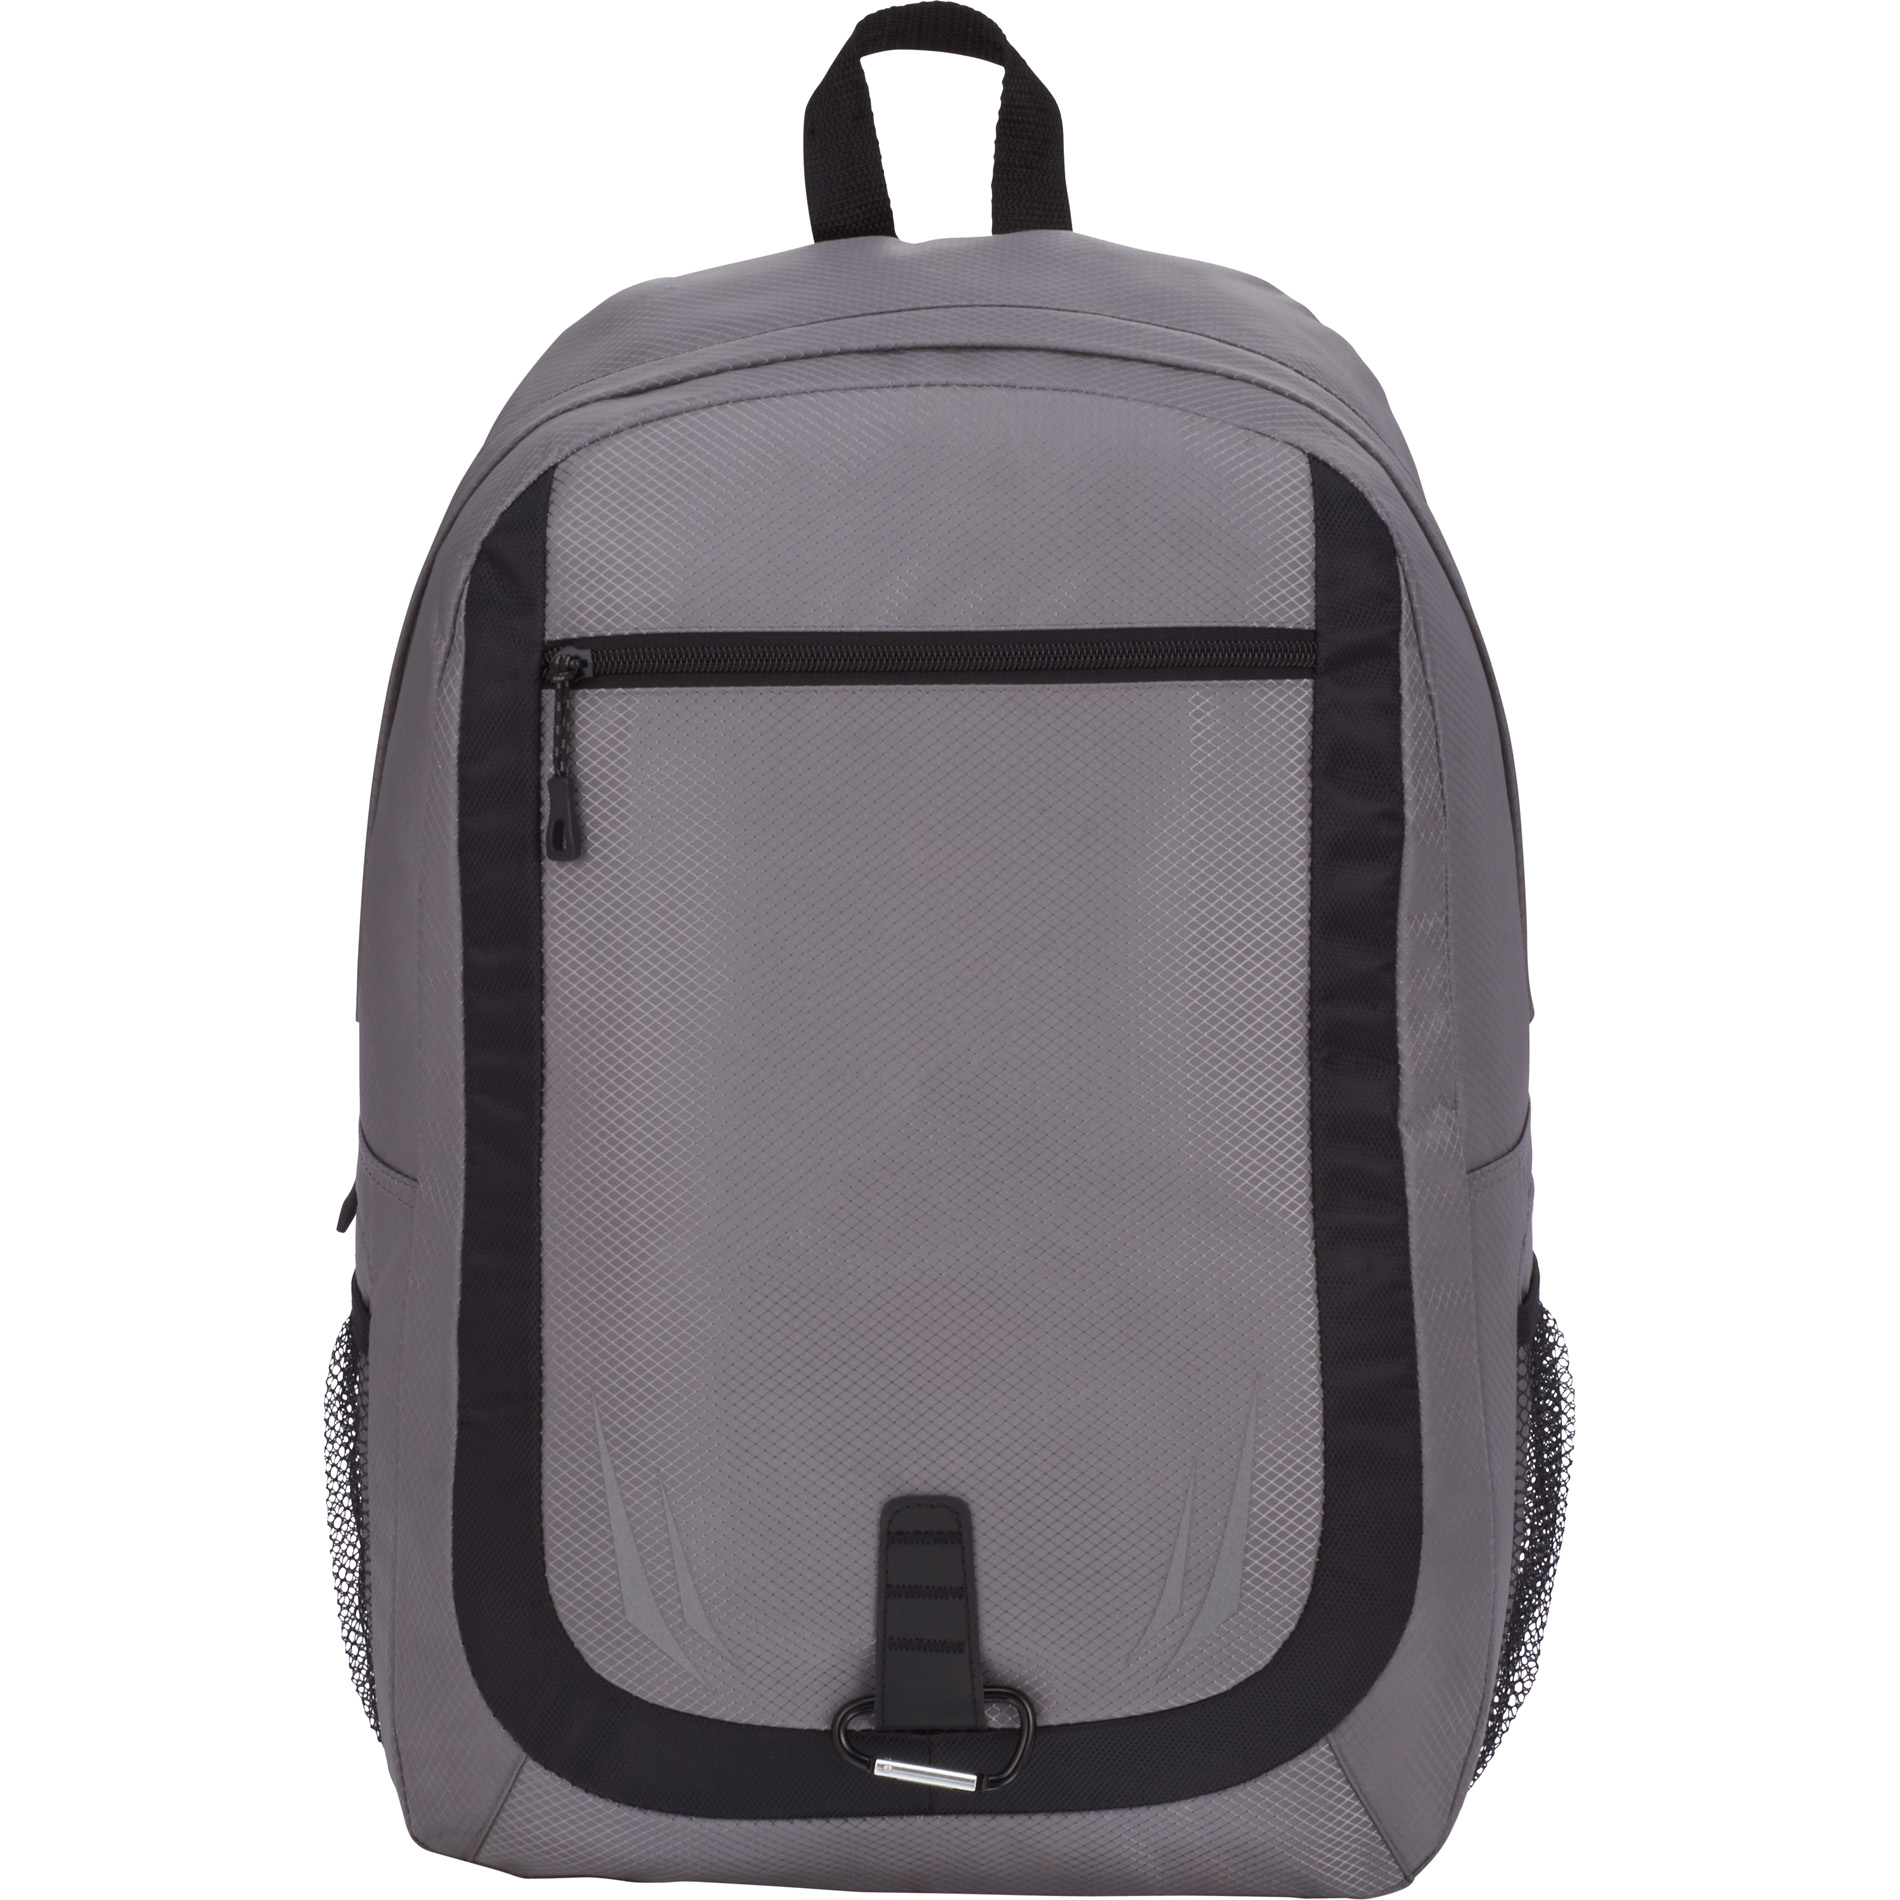 "LEEDS 3450-80 - Adventure 15"" Computer Backpack"